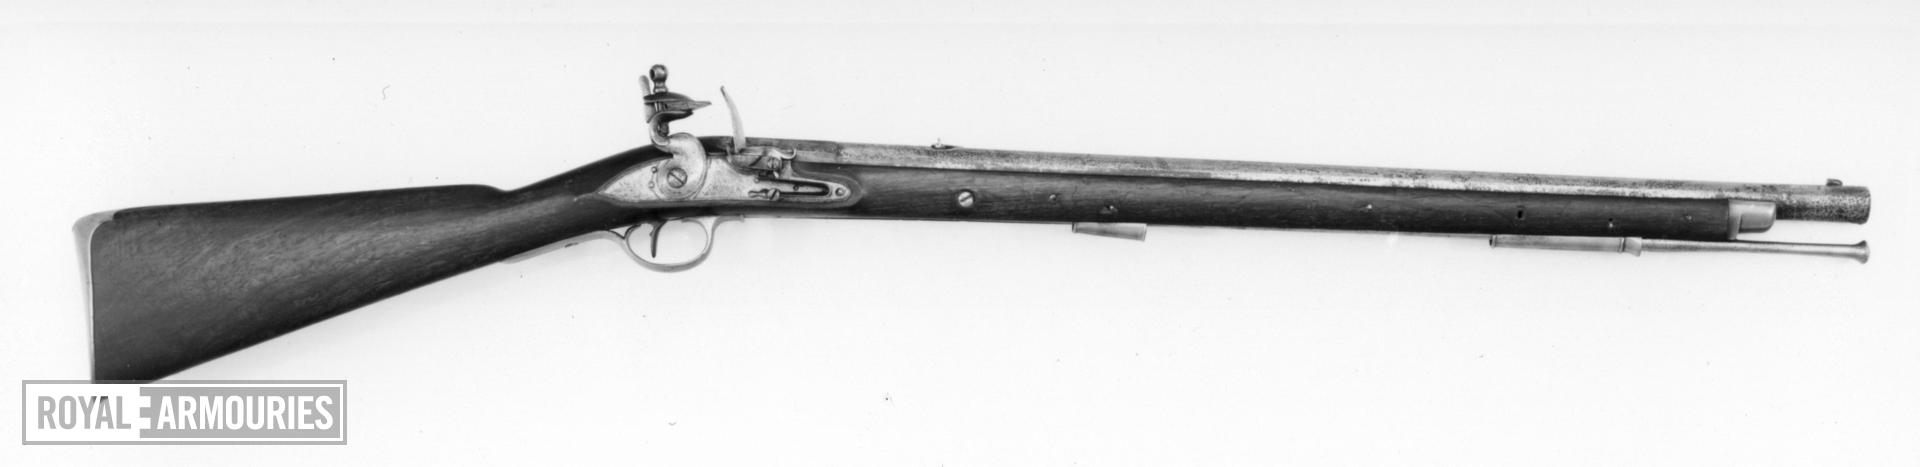 Flintlock muzzle-loading military carbine - By H. Nock